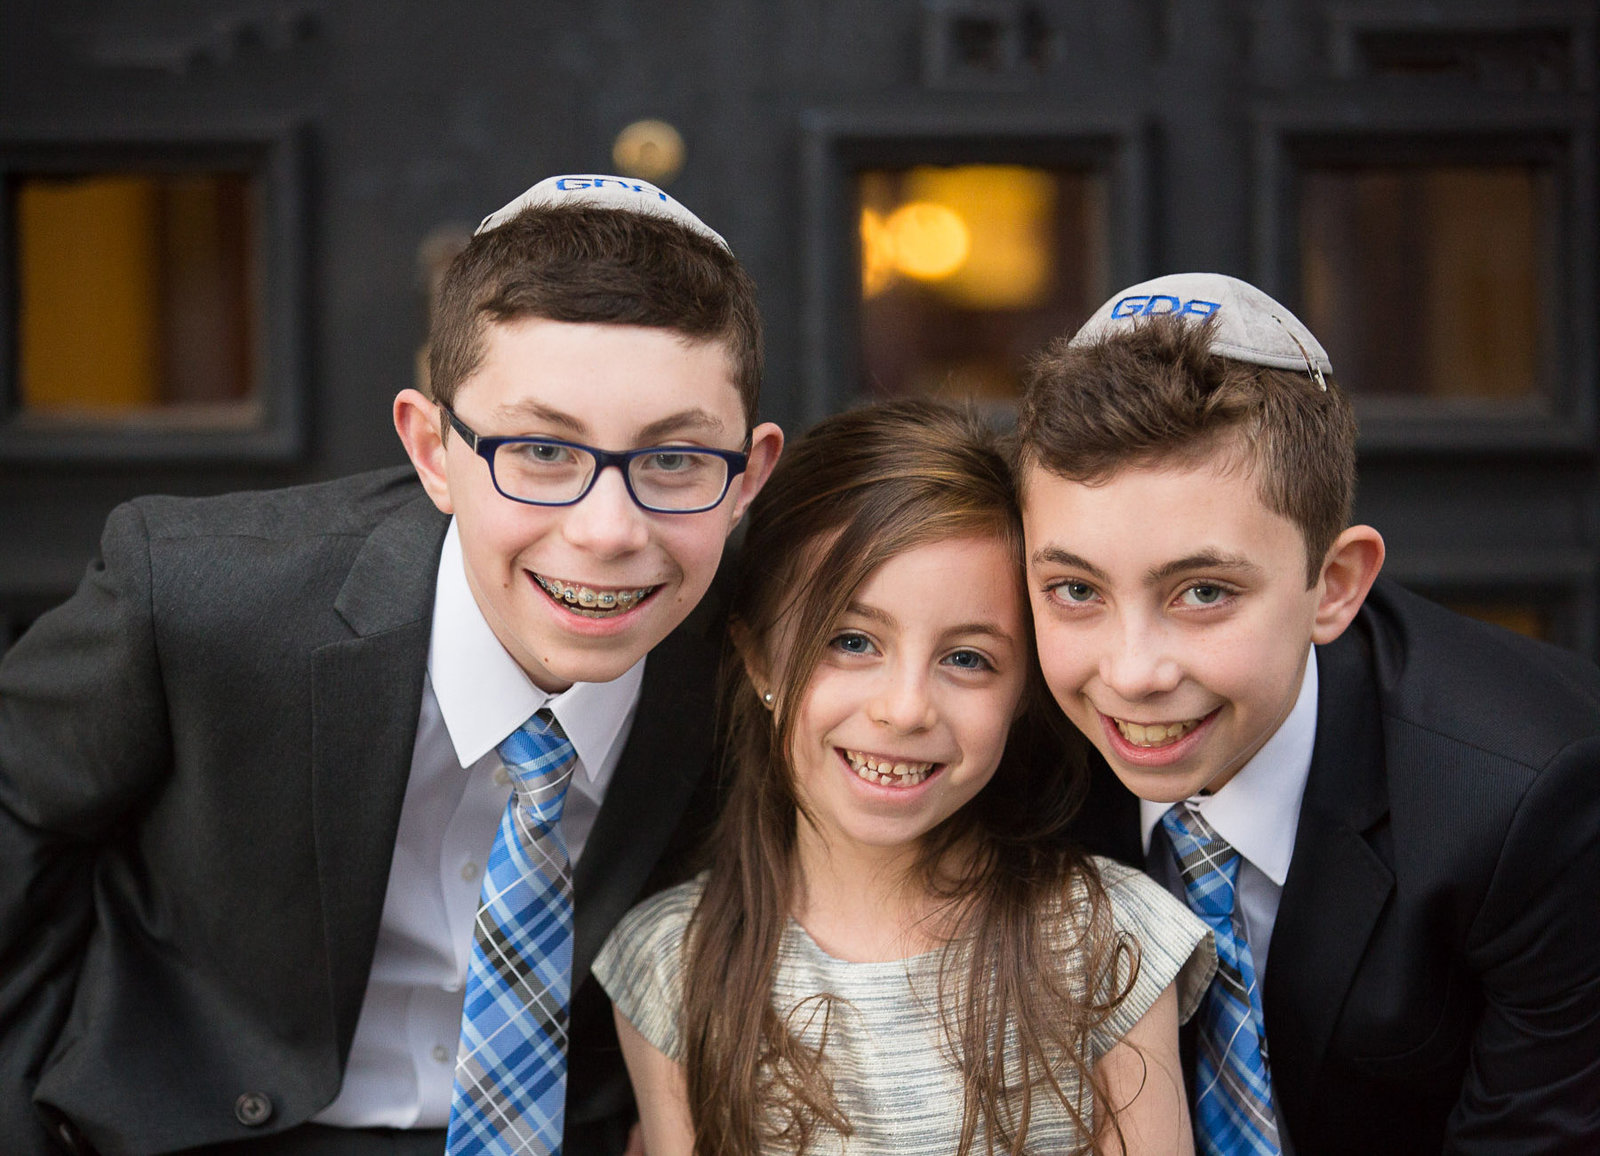 Jewish-Bar-Bat-Mitzvah-Event-Photography-20150331-1851